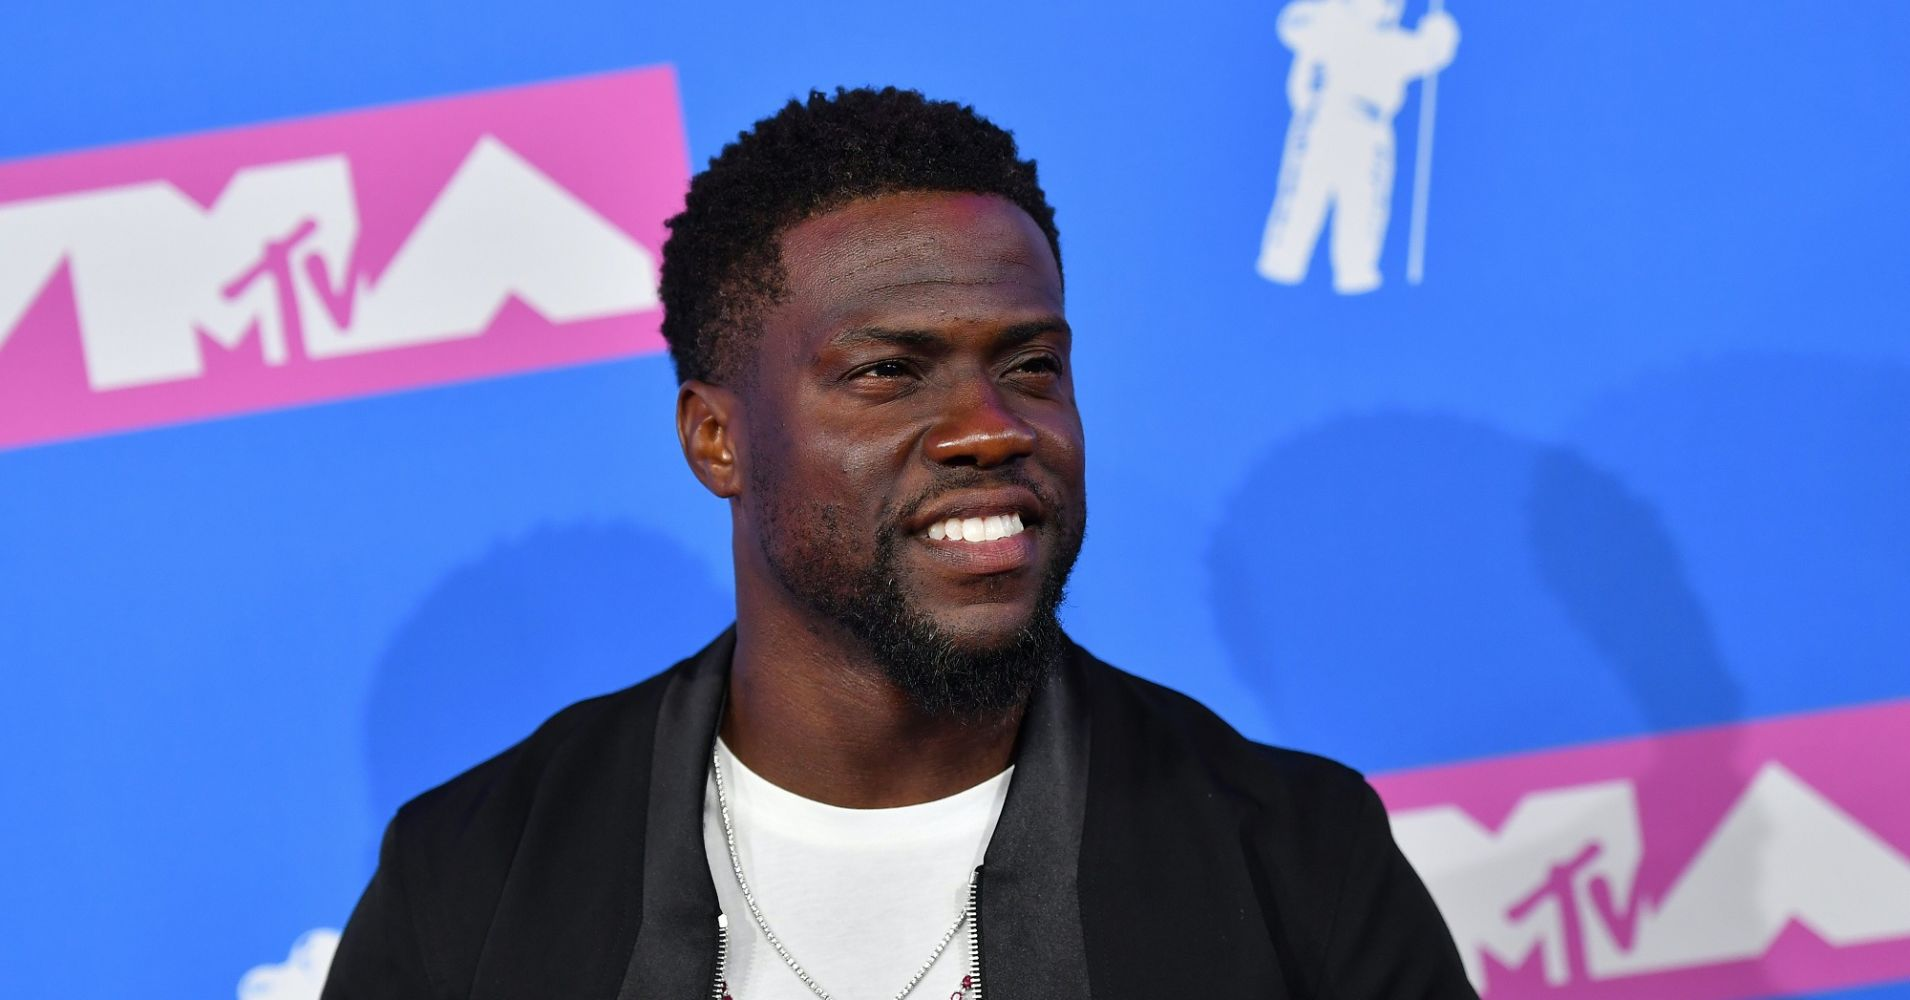 The Academy is Reportedly Still Interested in Kevin Hart Hosting Oscars